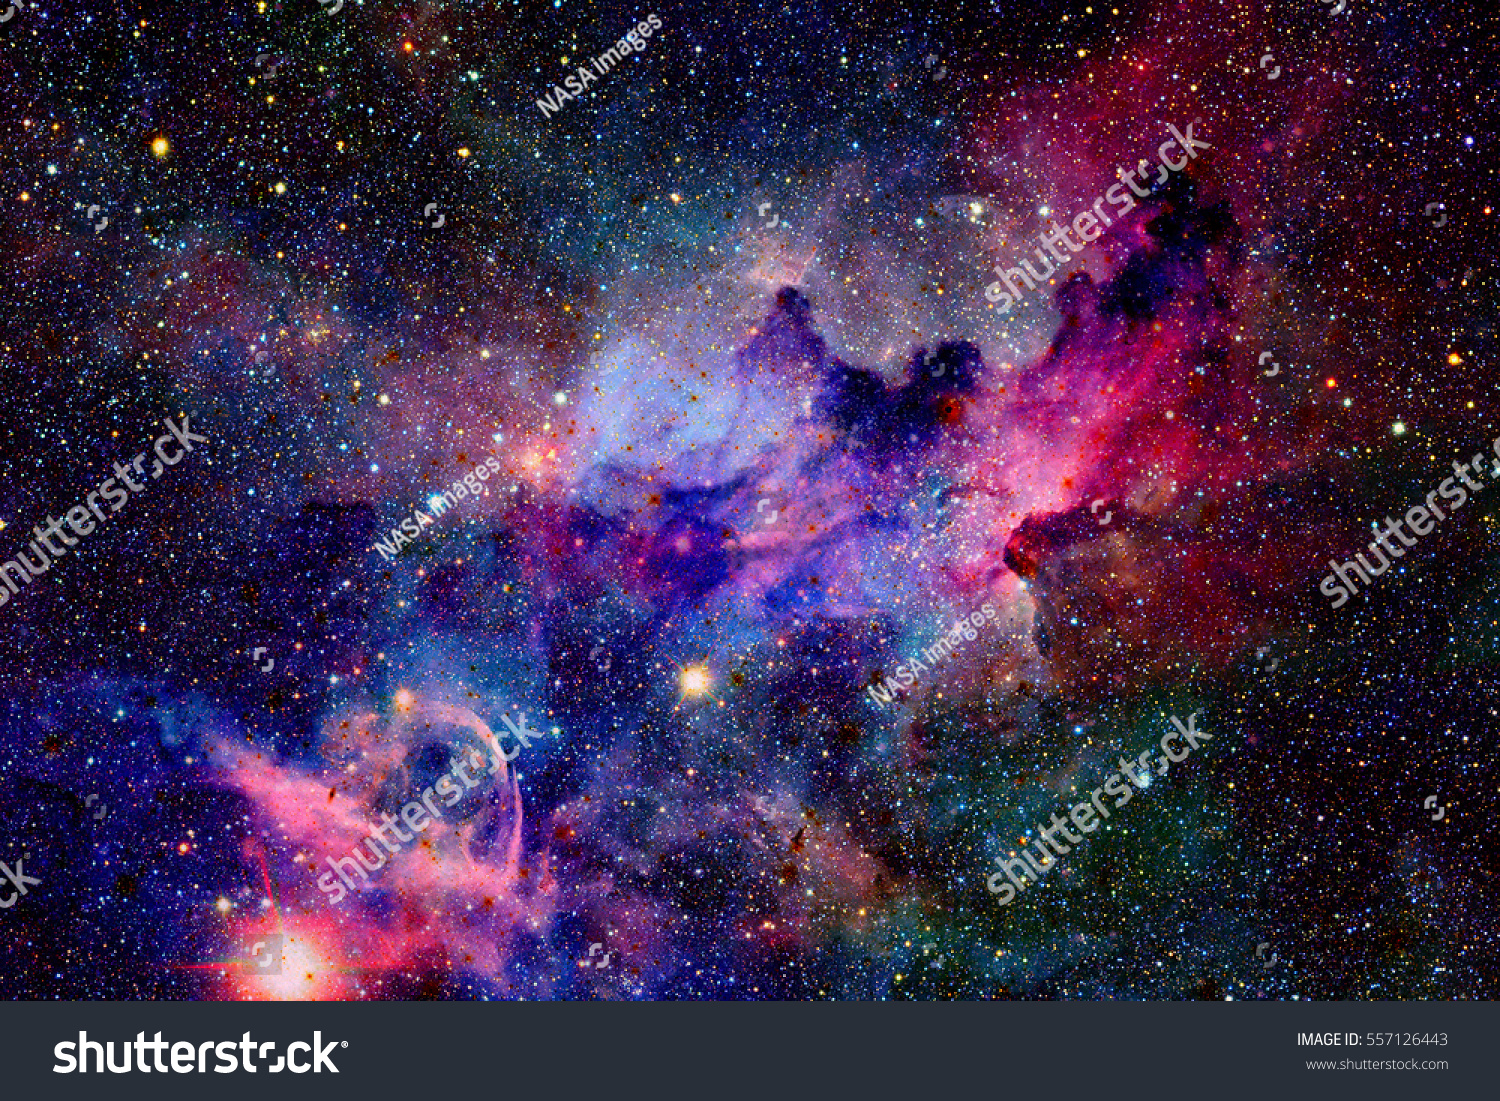 Nebula and galaxies in space. Elements of this image furnished by NASA. #557126443